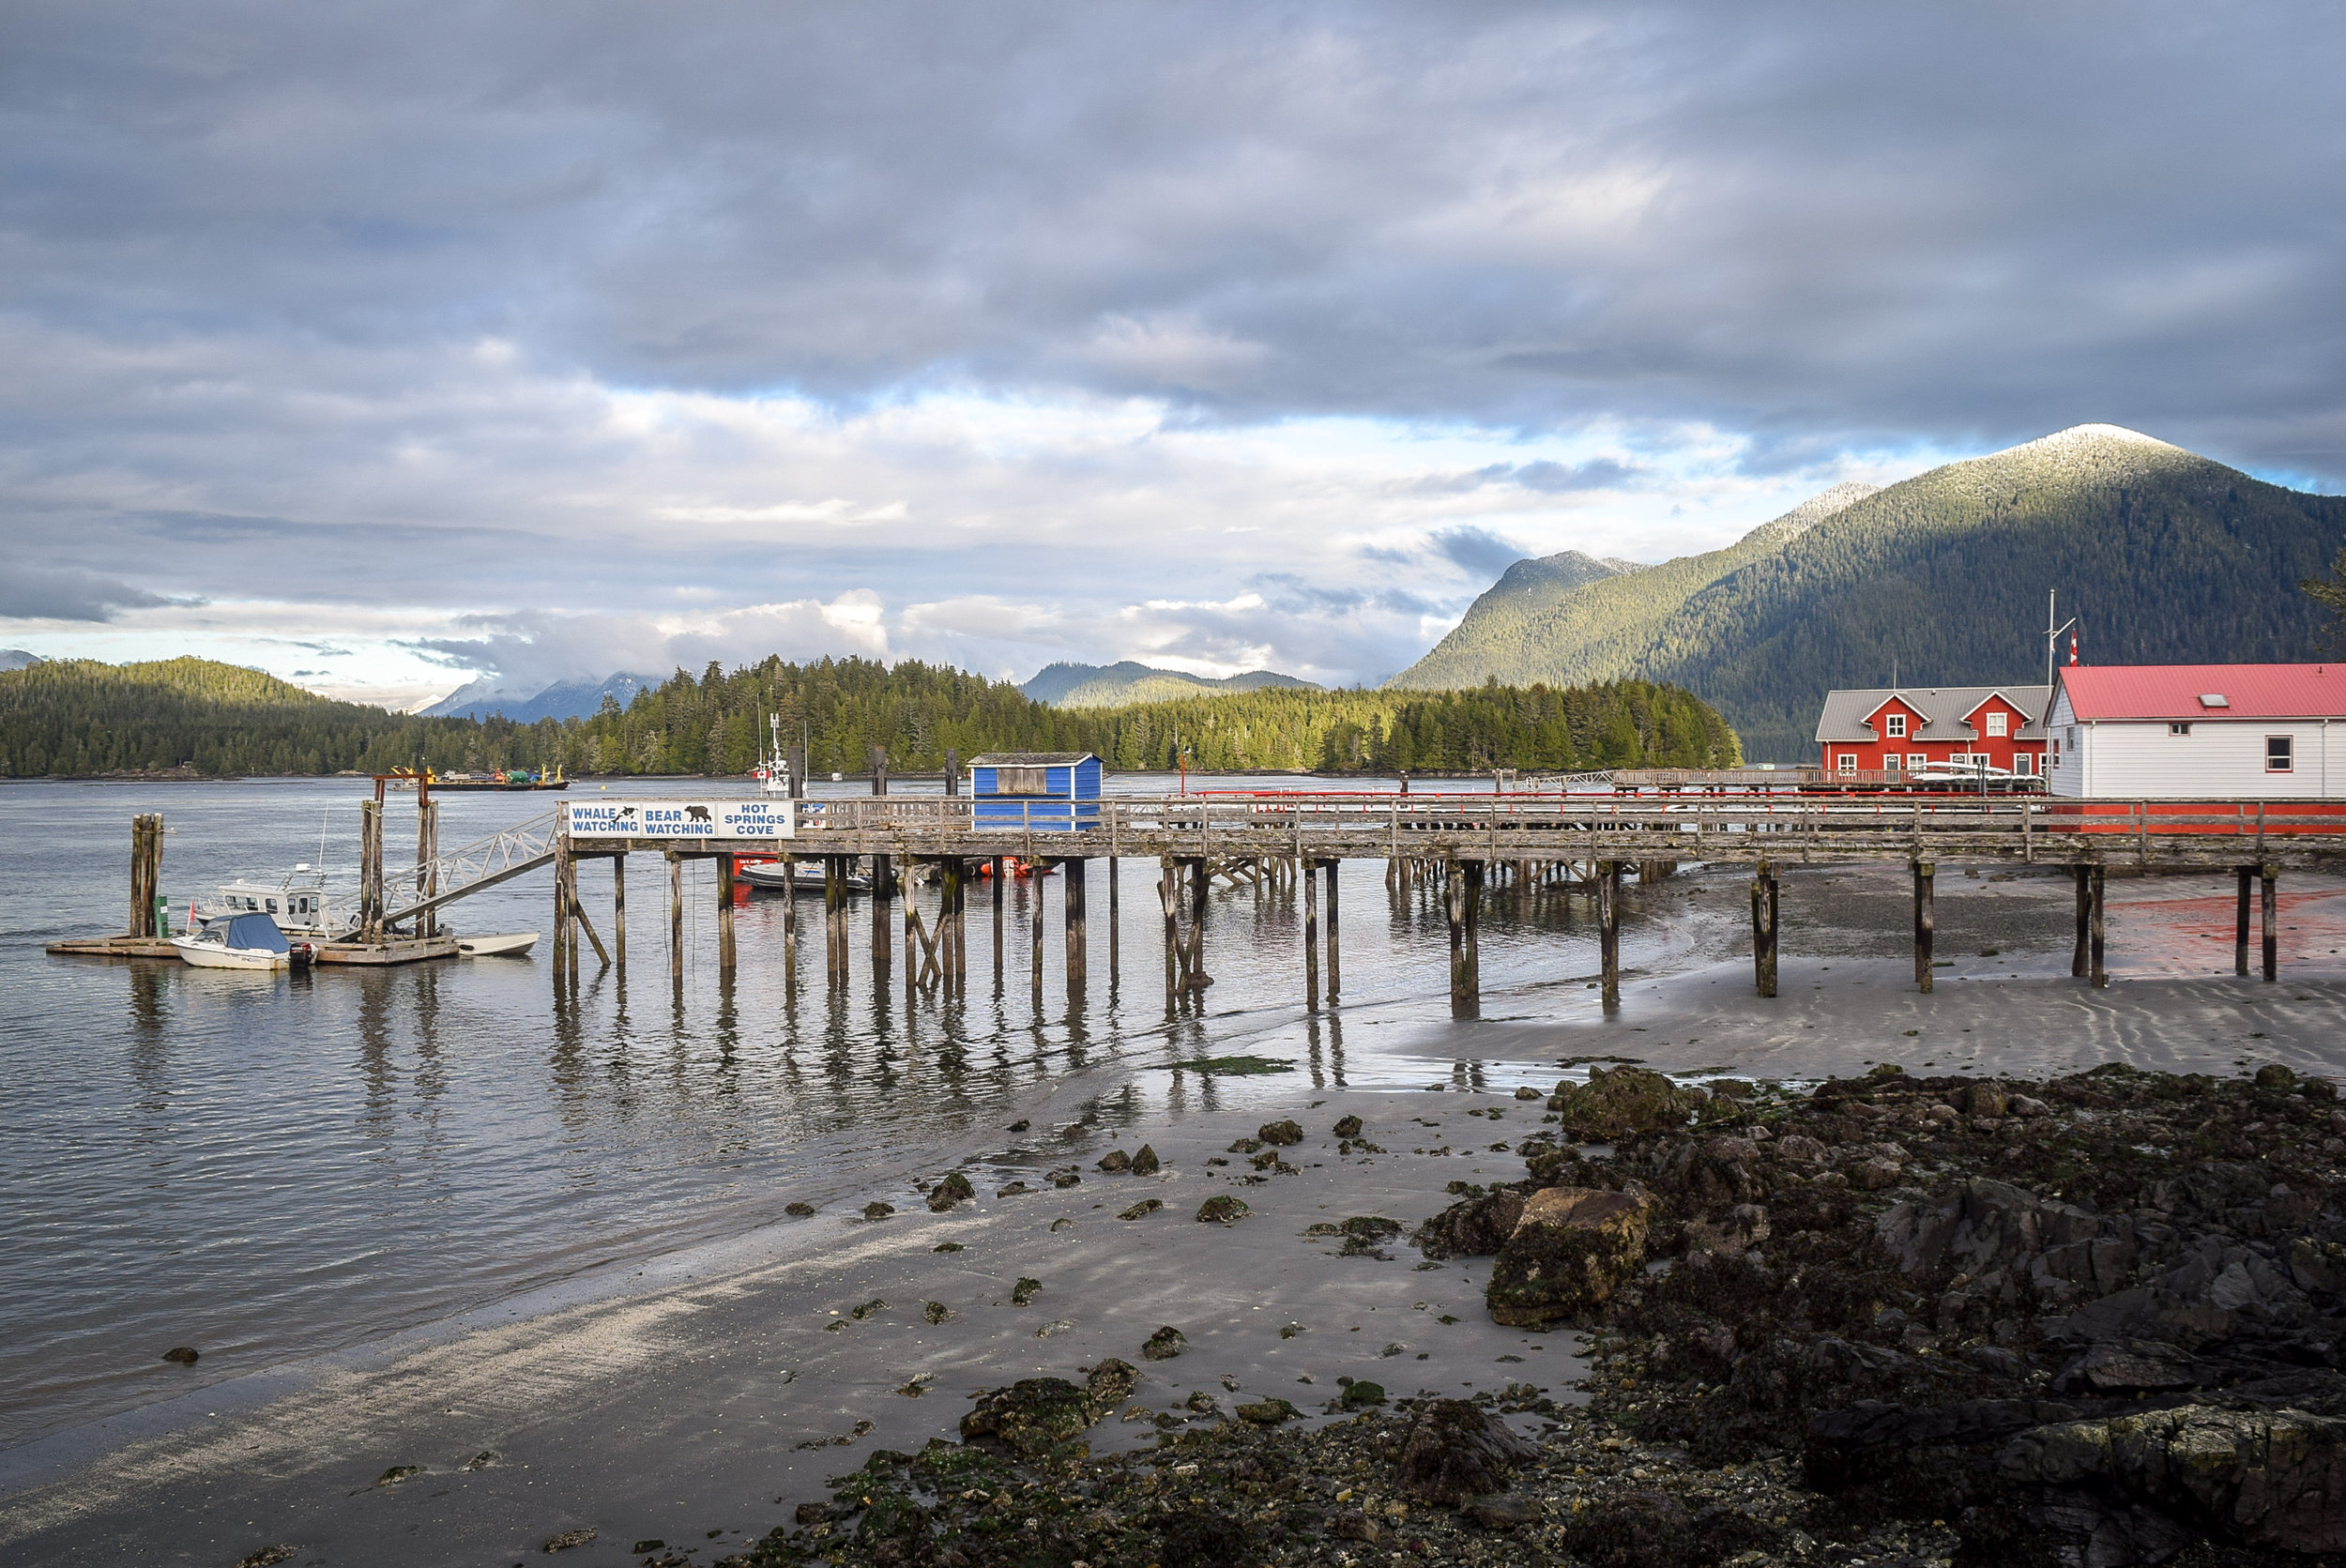 Pier and waterfront in Tofino